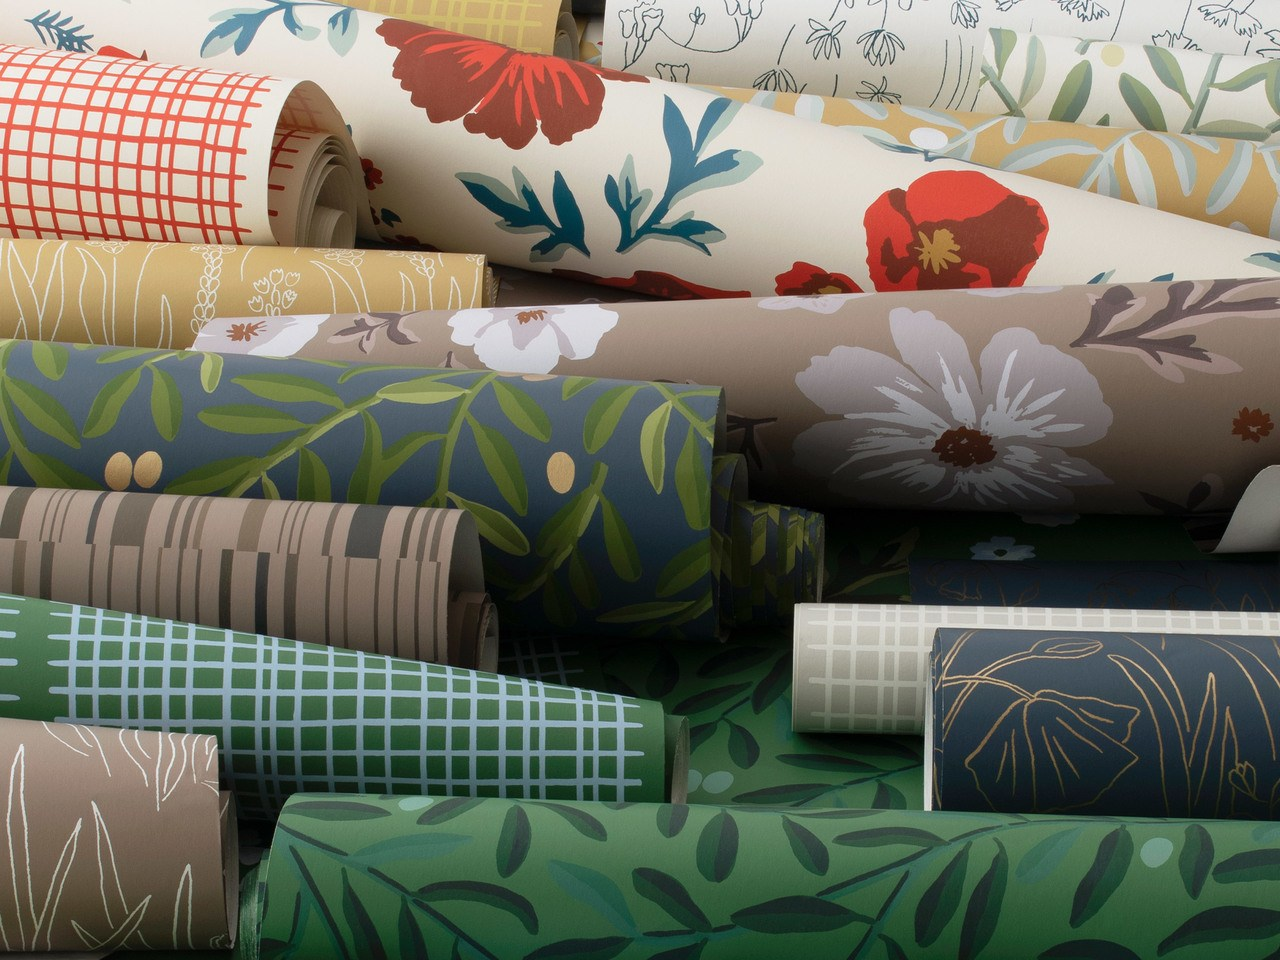 Rolls of various wallpapers   Meet the designers behind the new Schoolhouse + Hygge & West wallpaper collection